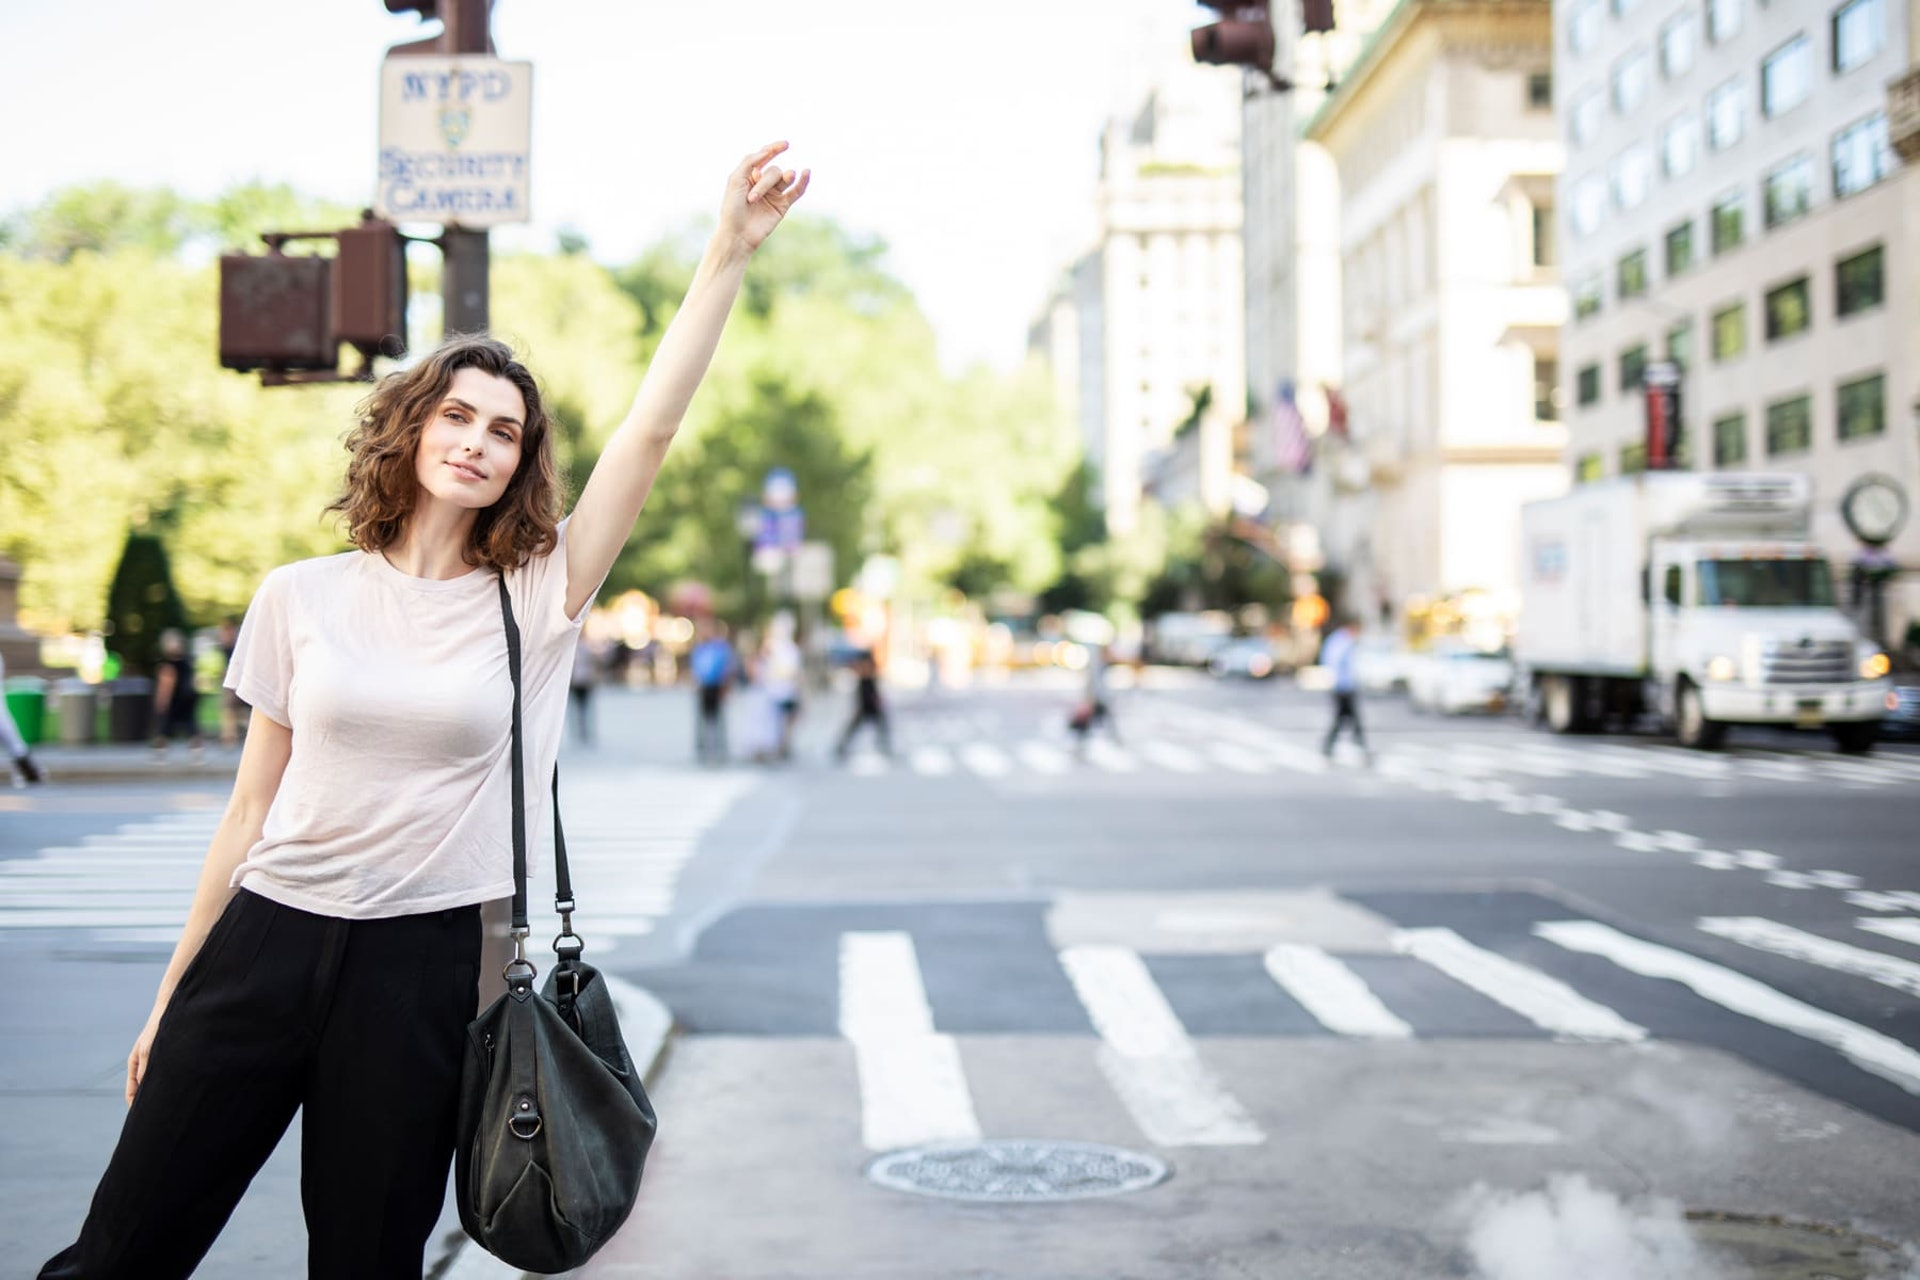 Woman hailing a cab in New York